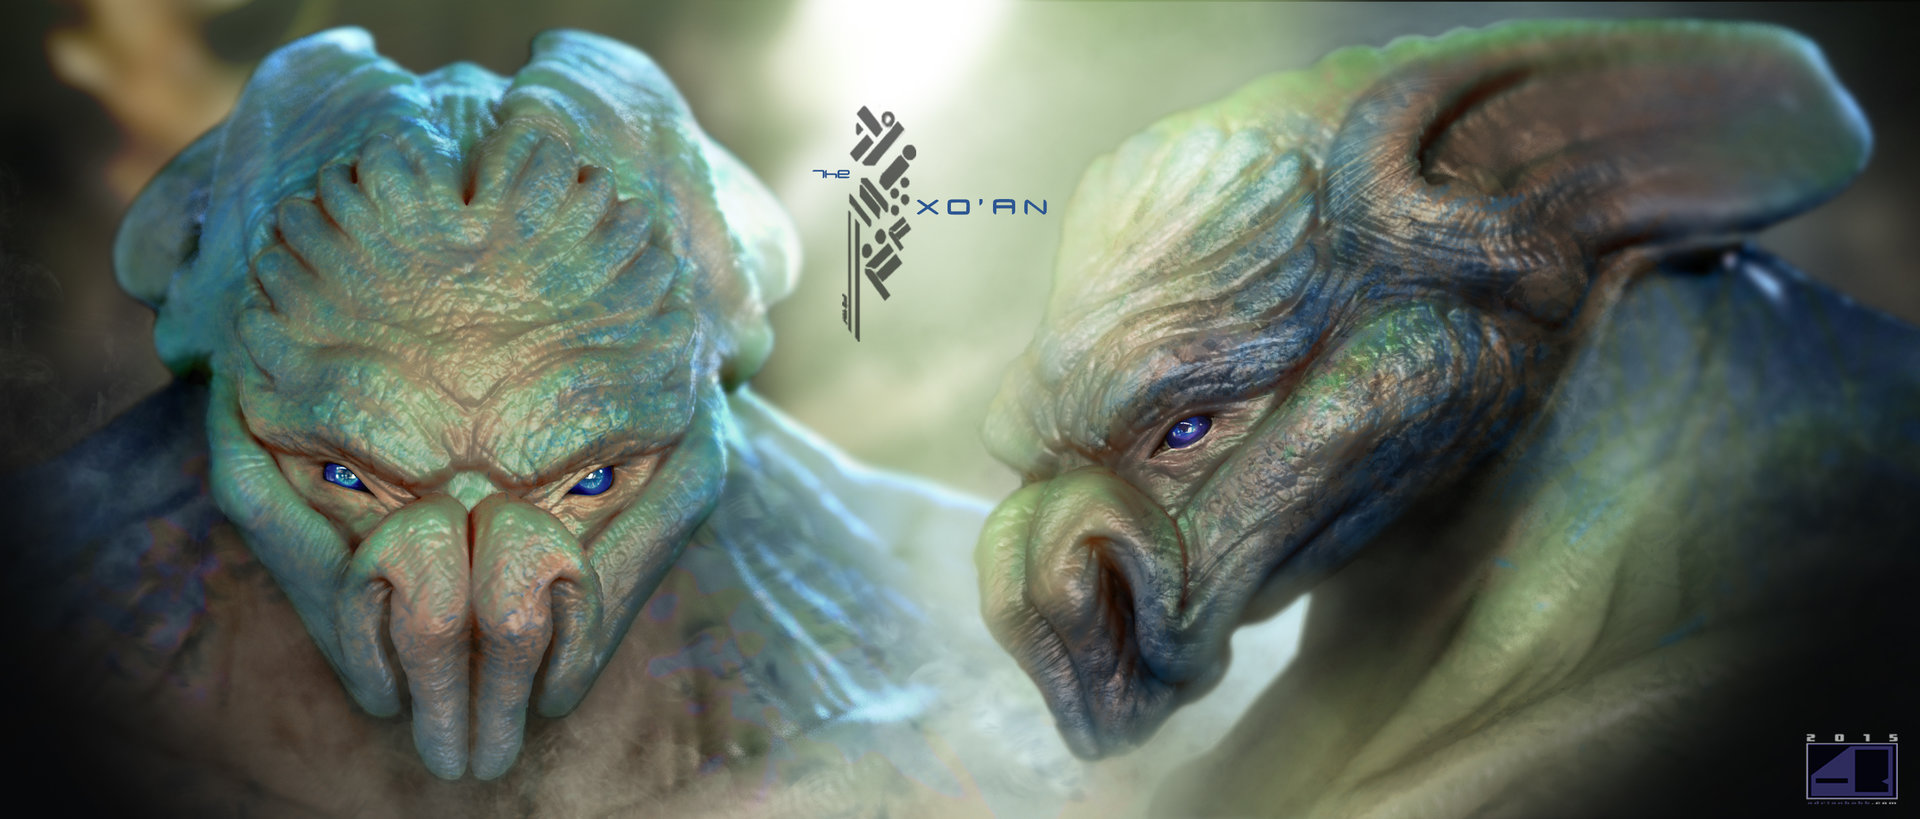 "Title: ""The Xo'an"" Closeup.